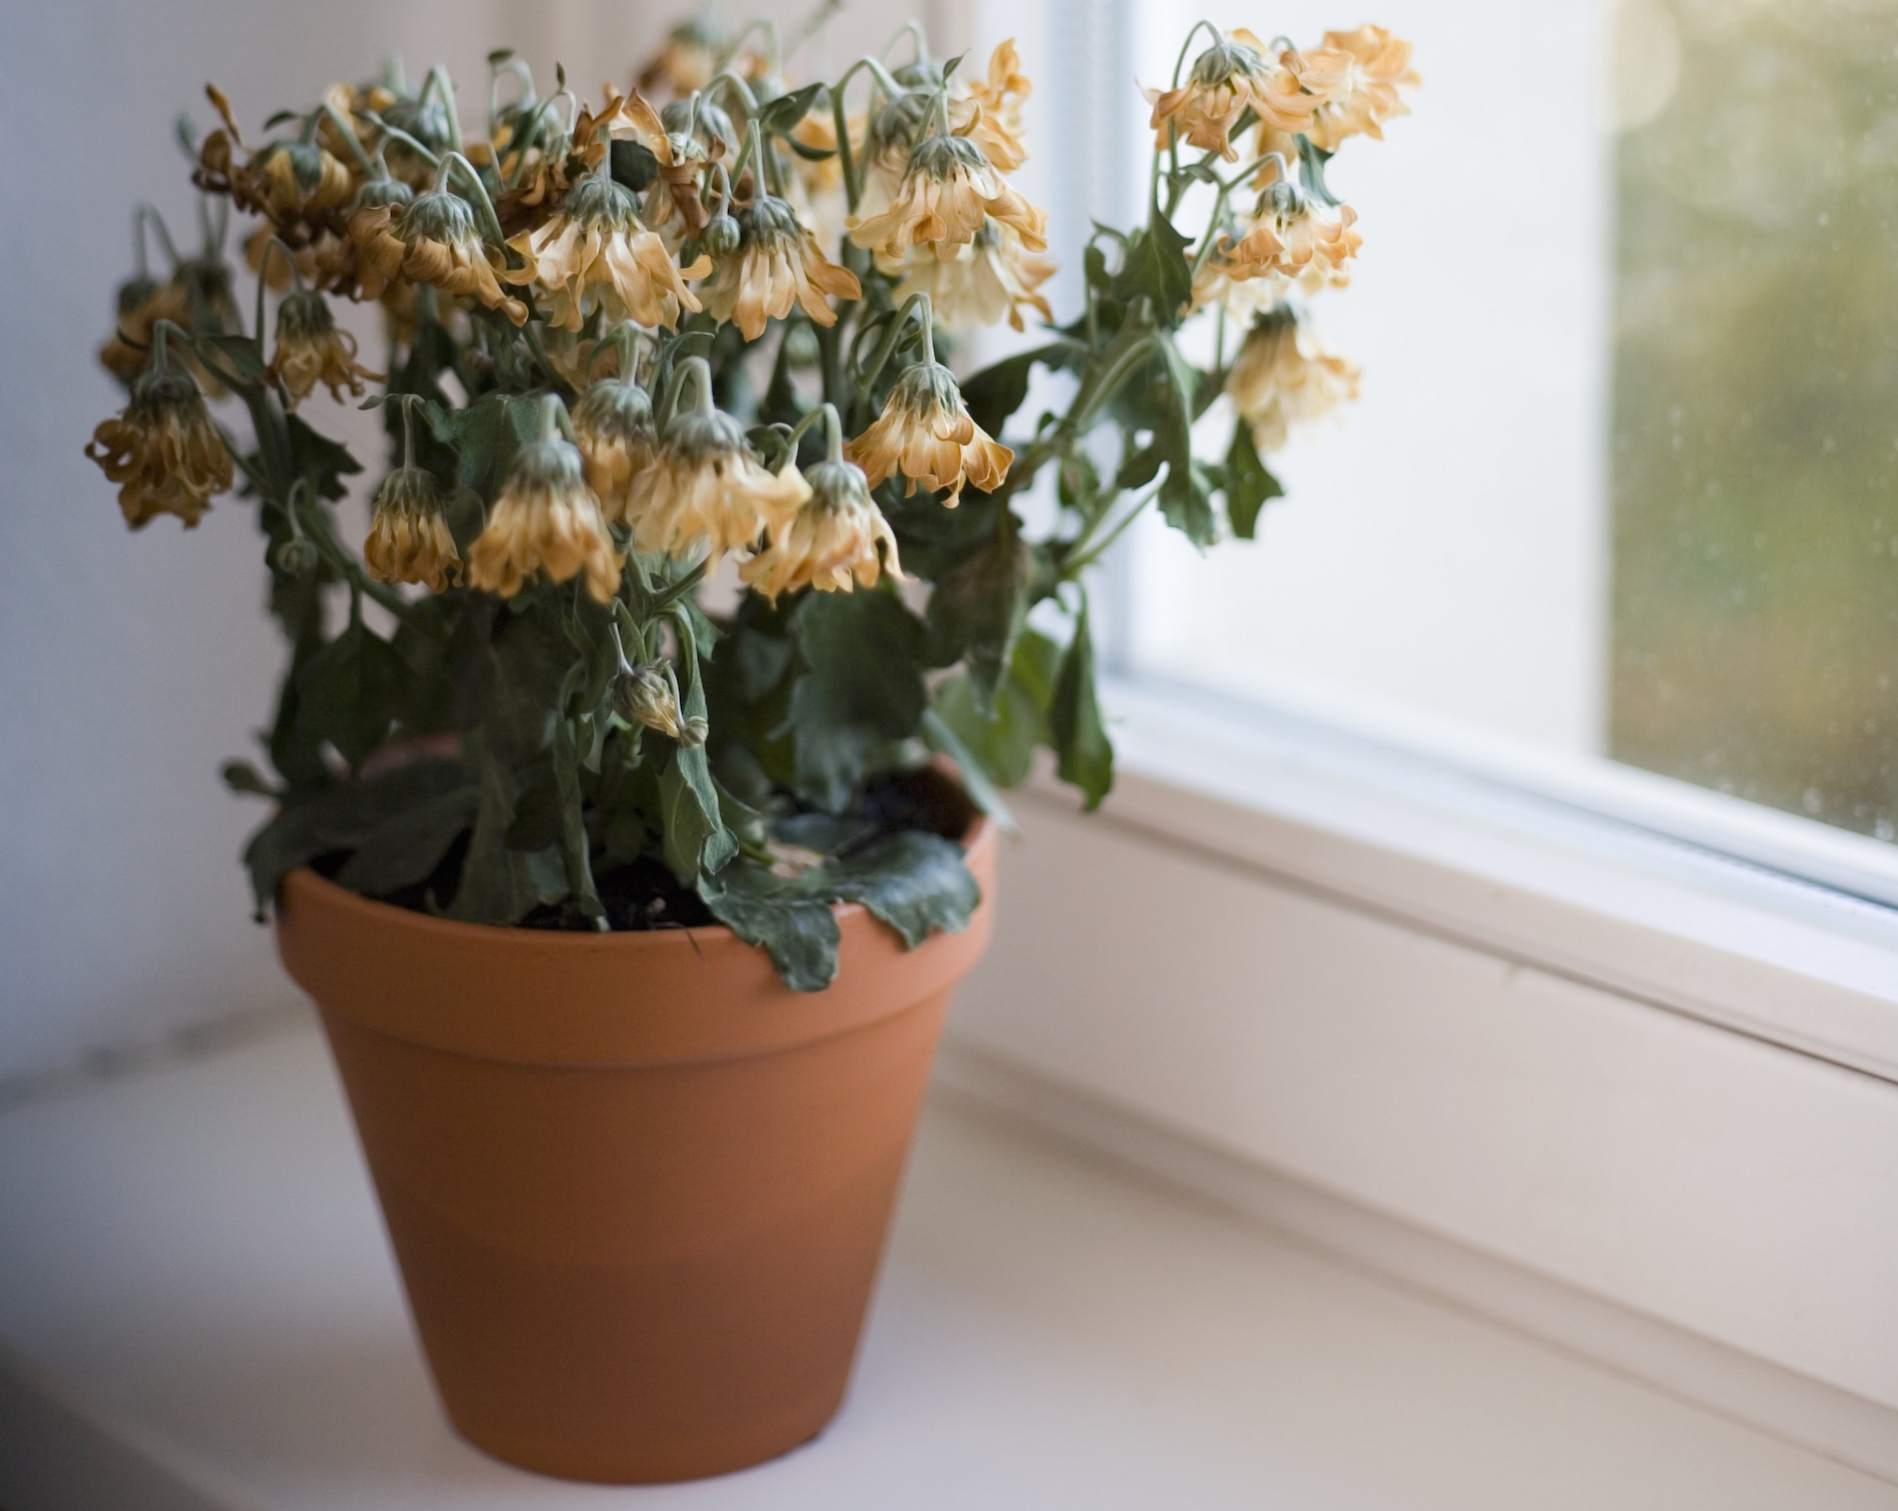 Dying flowers on window sill